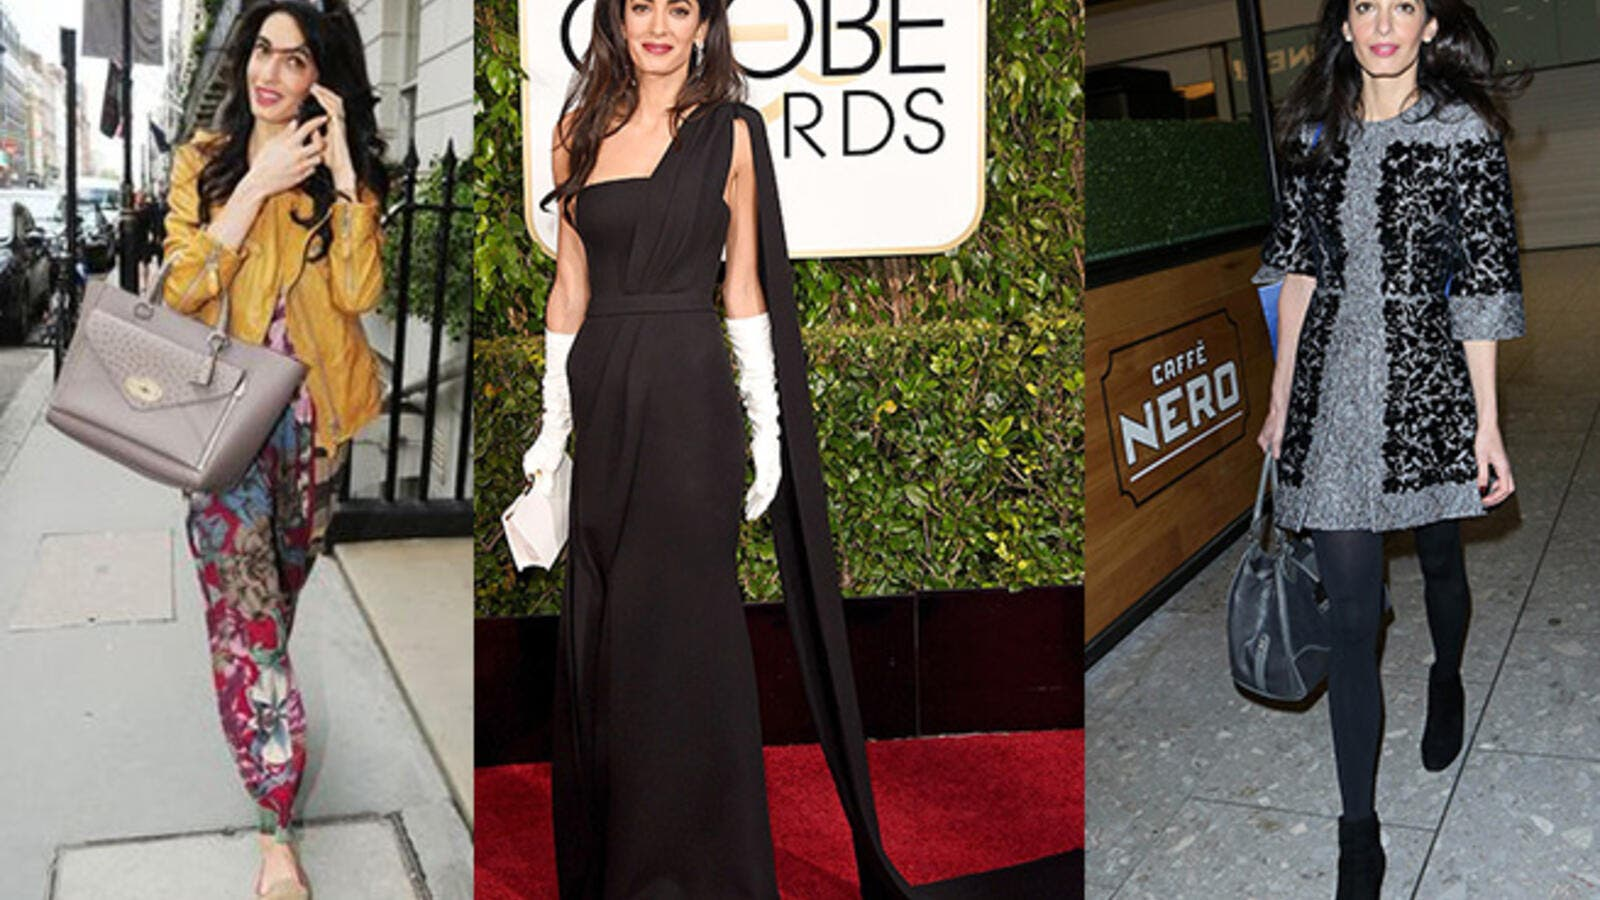 The ever-evolving (and enviable) style of Amal Clooney's